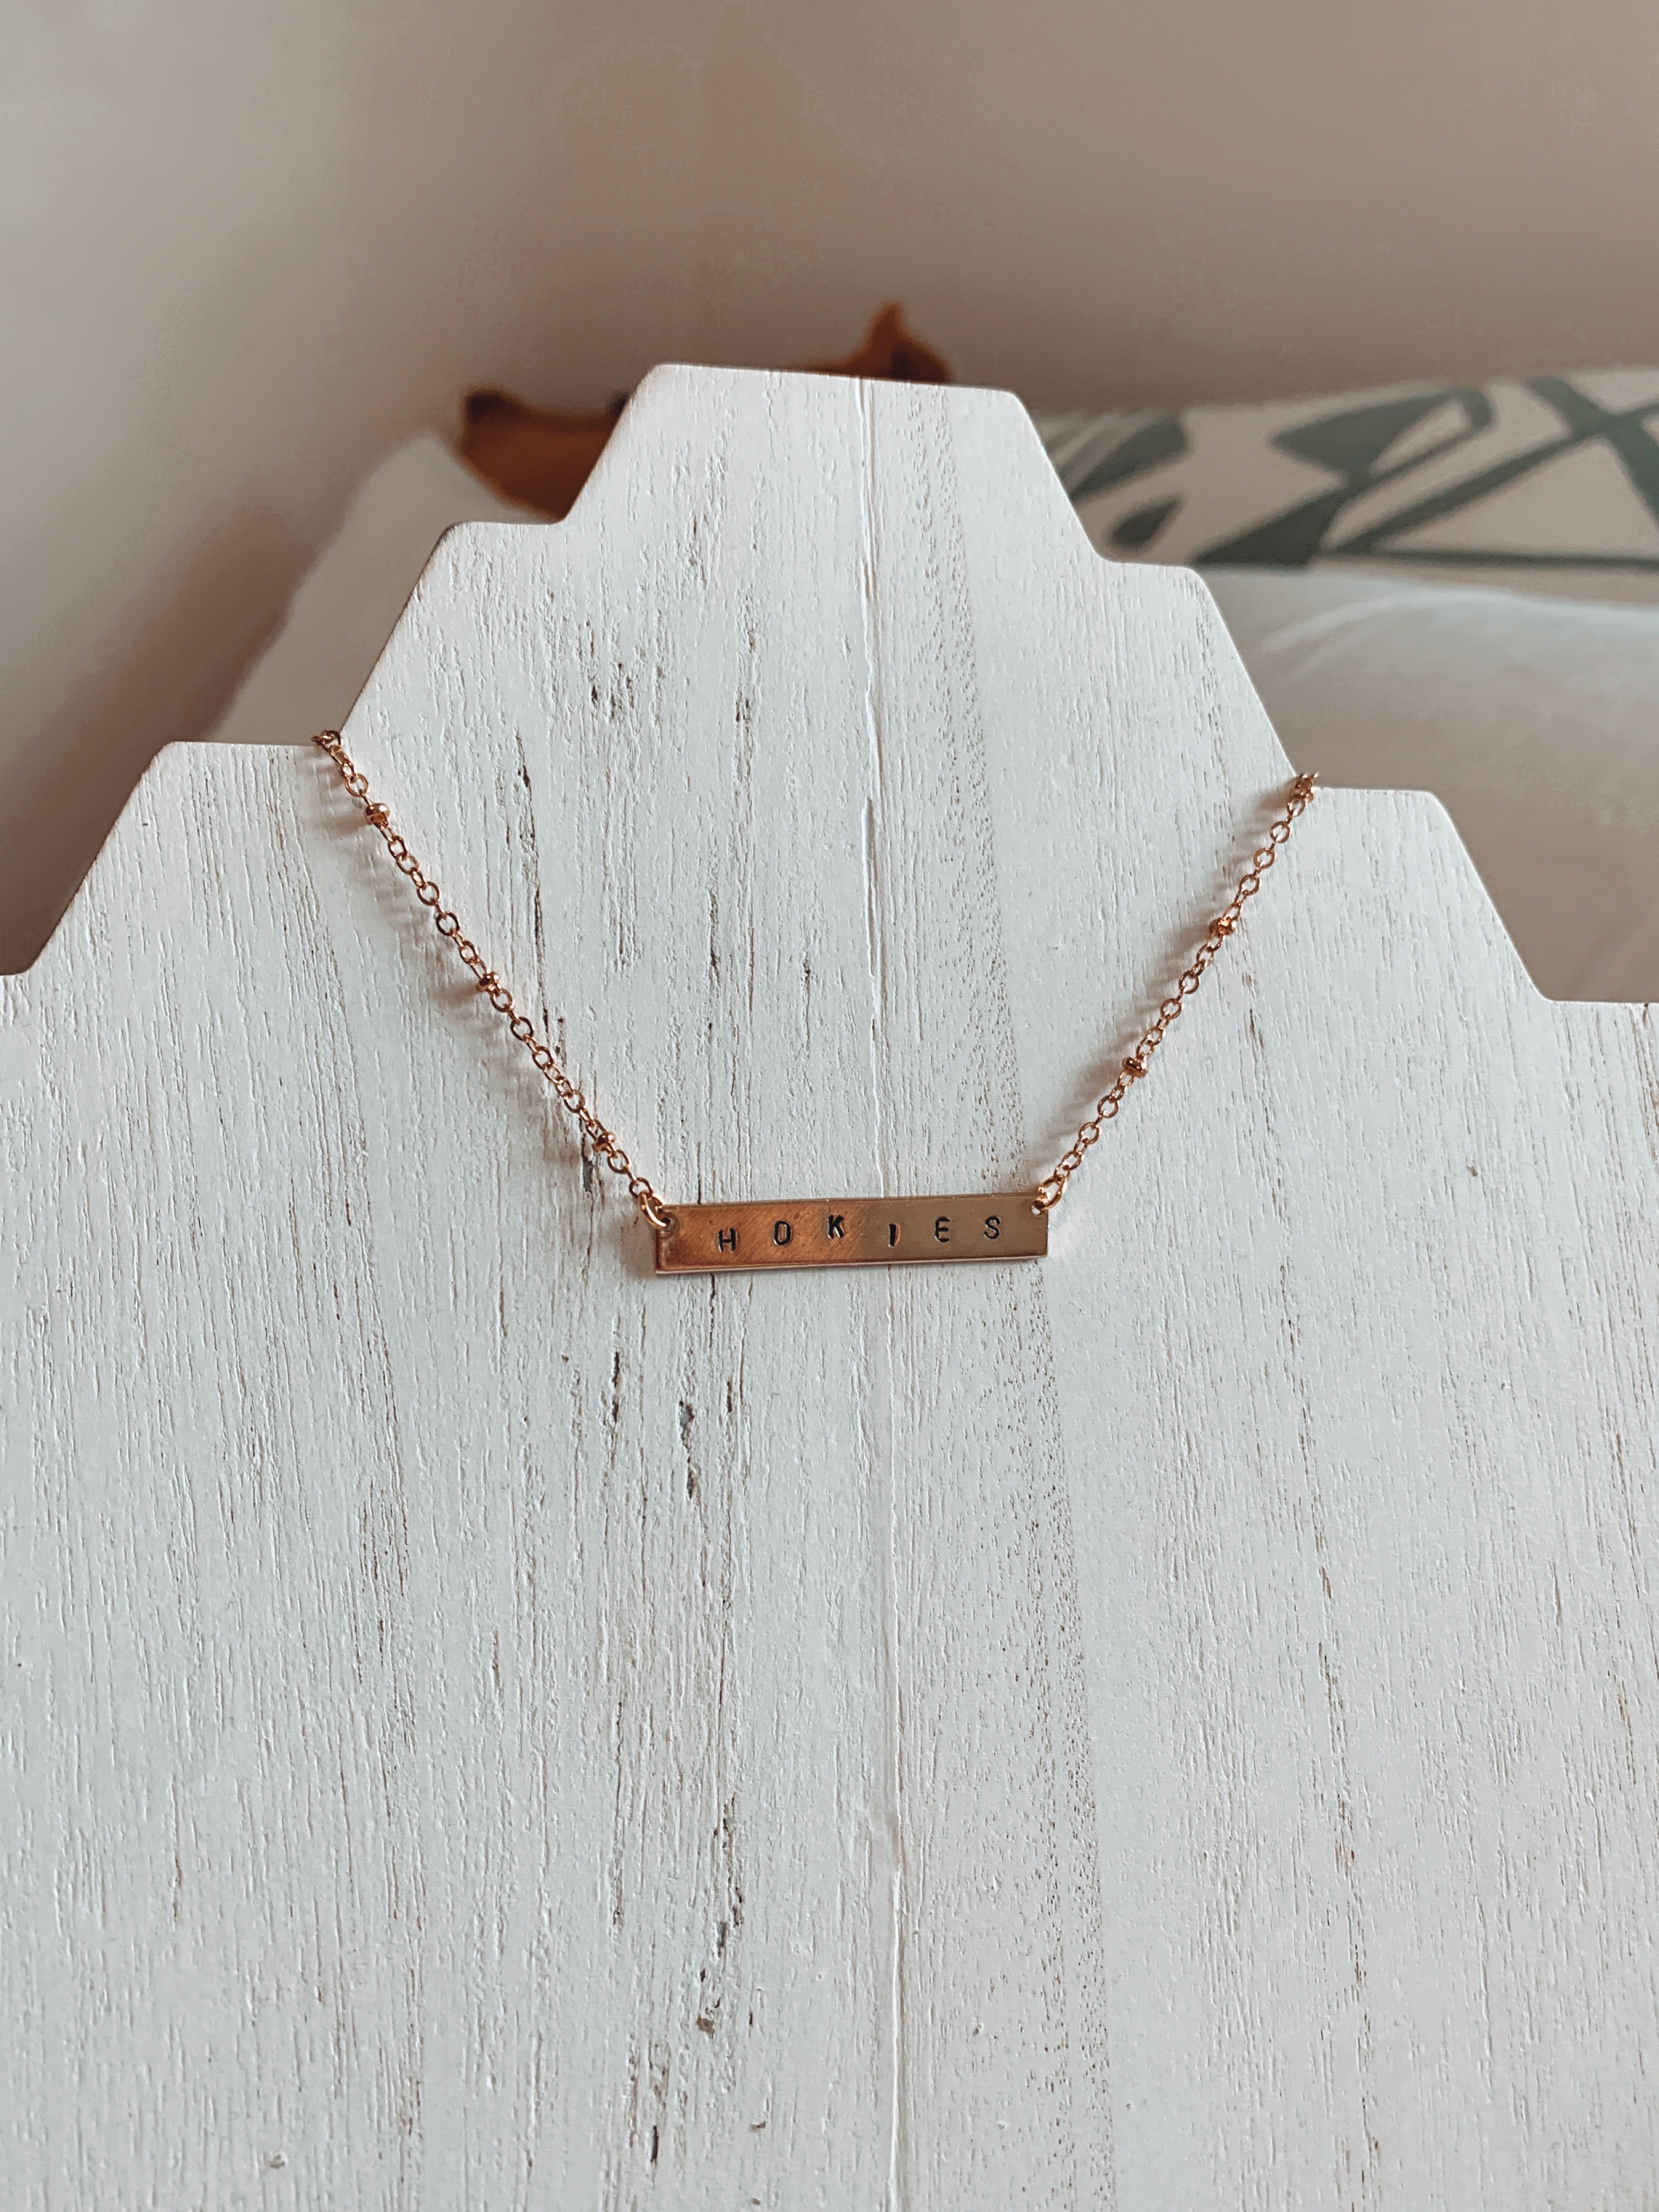 Regular-Plated Customized Bar Necklace - Talay Jewelry